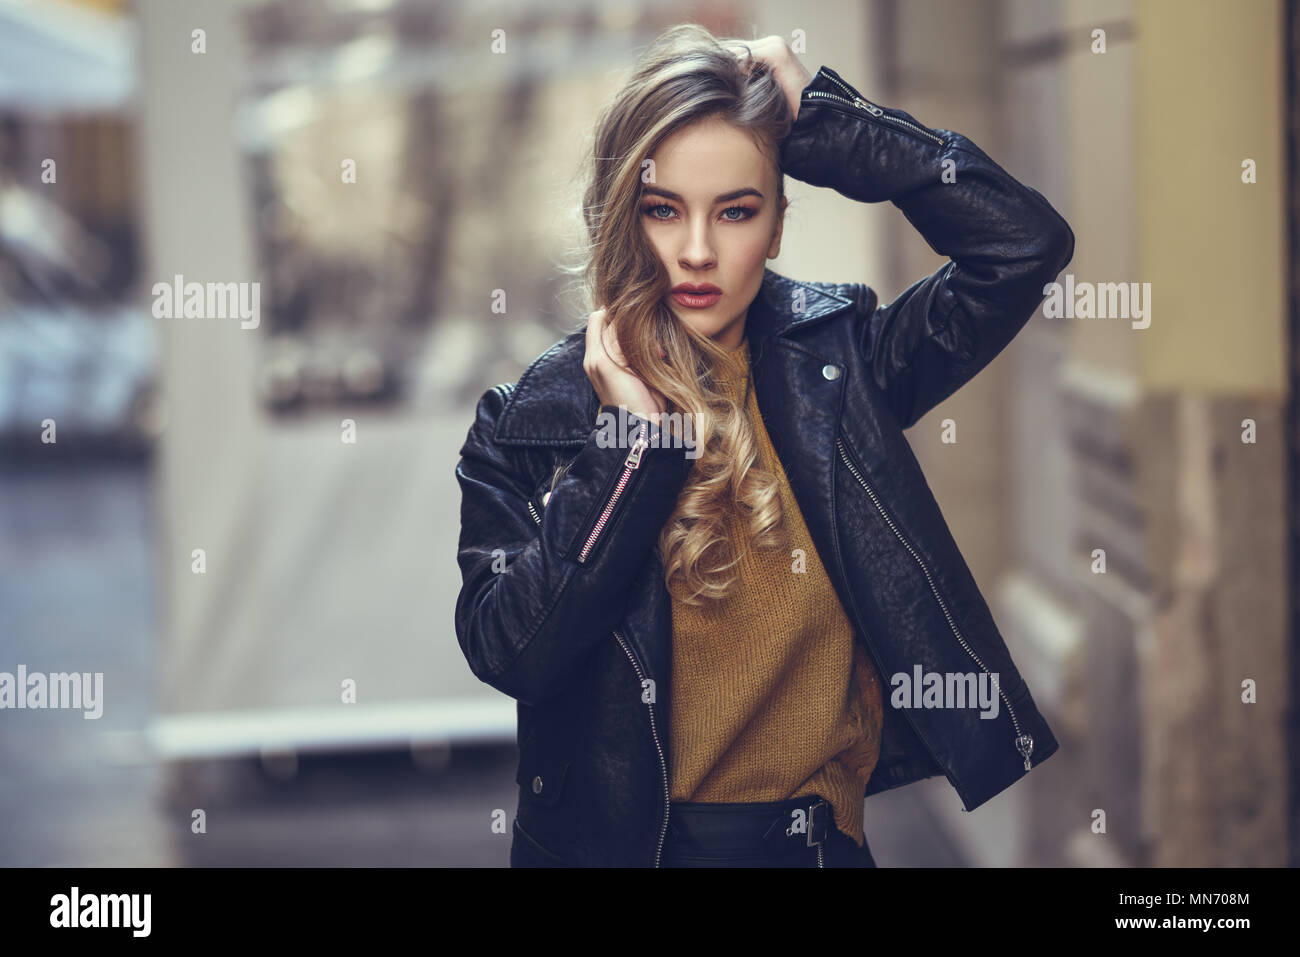 Blonde woman in urban background. Beautiful young girl wearing